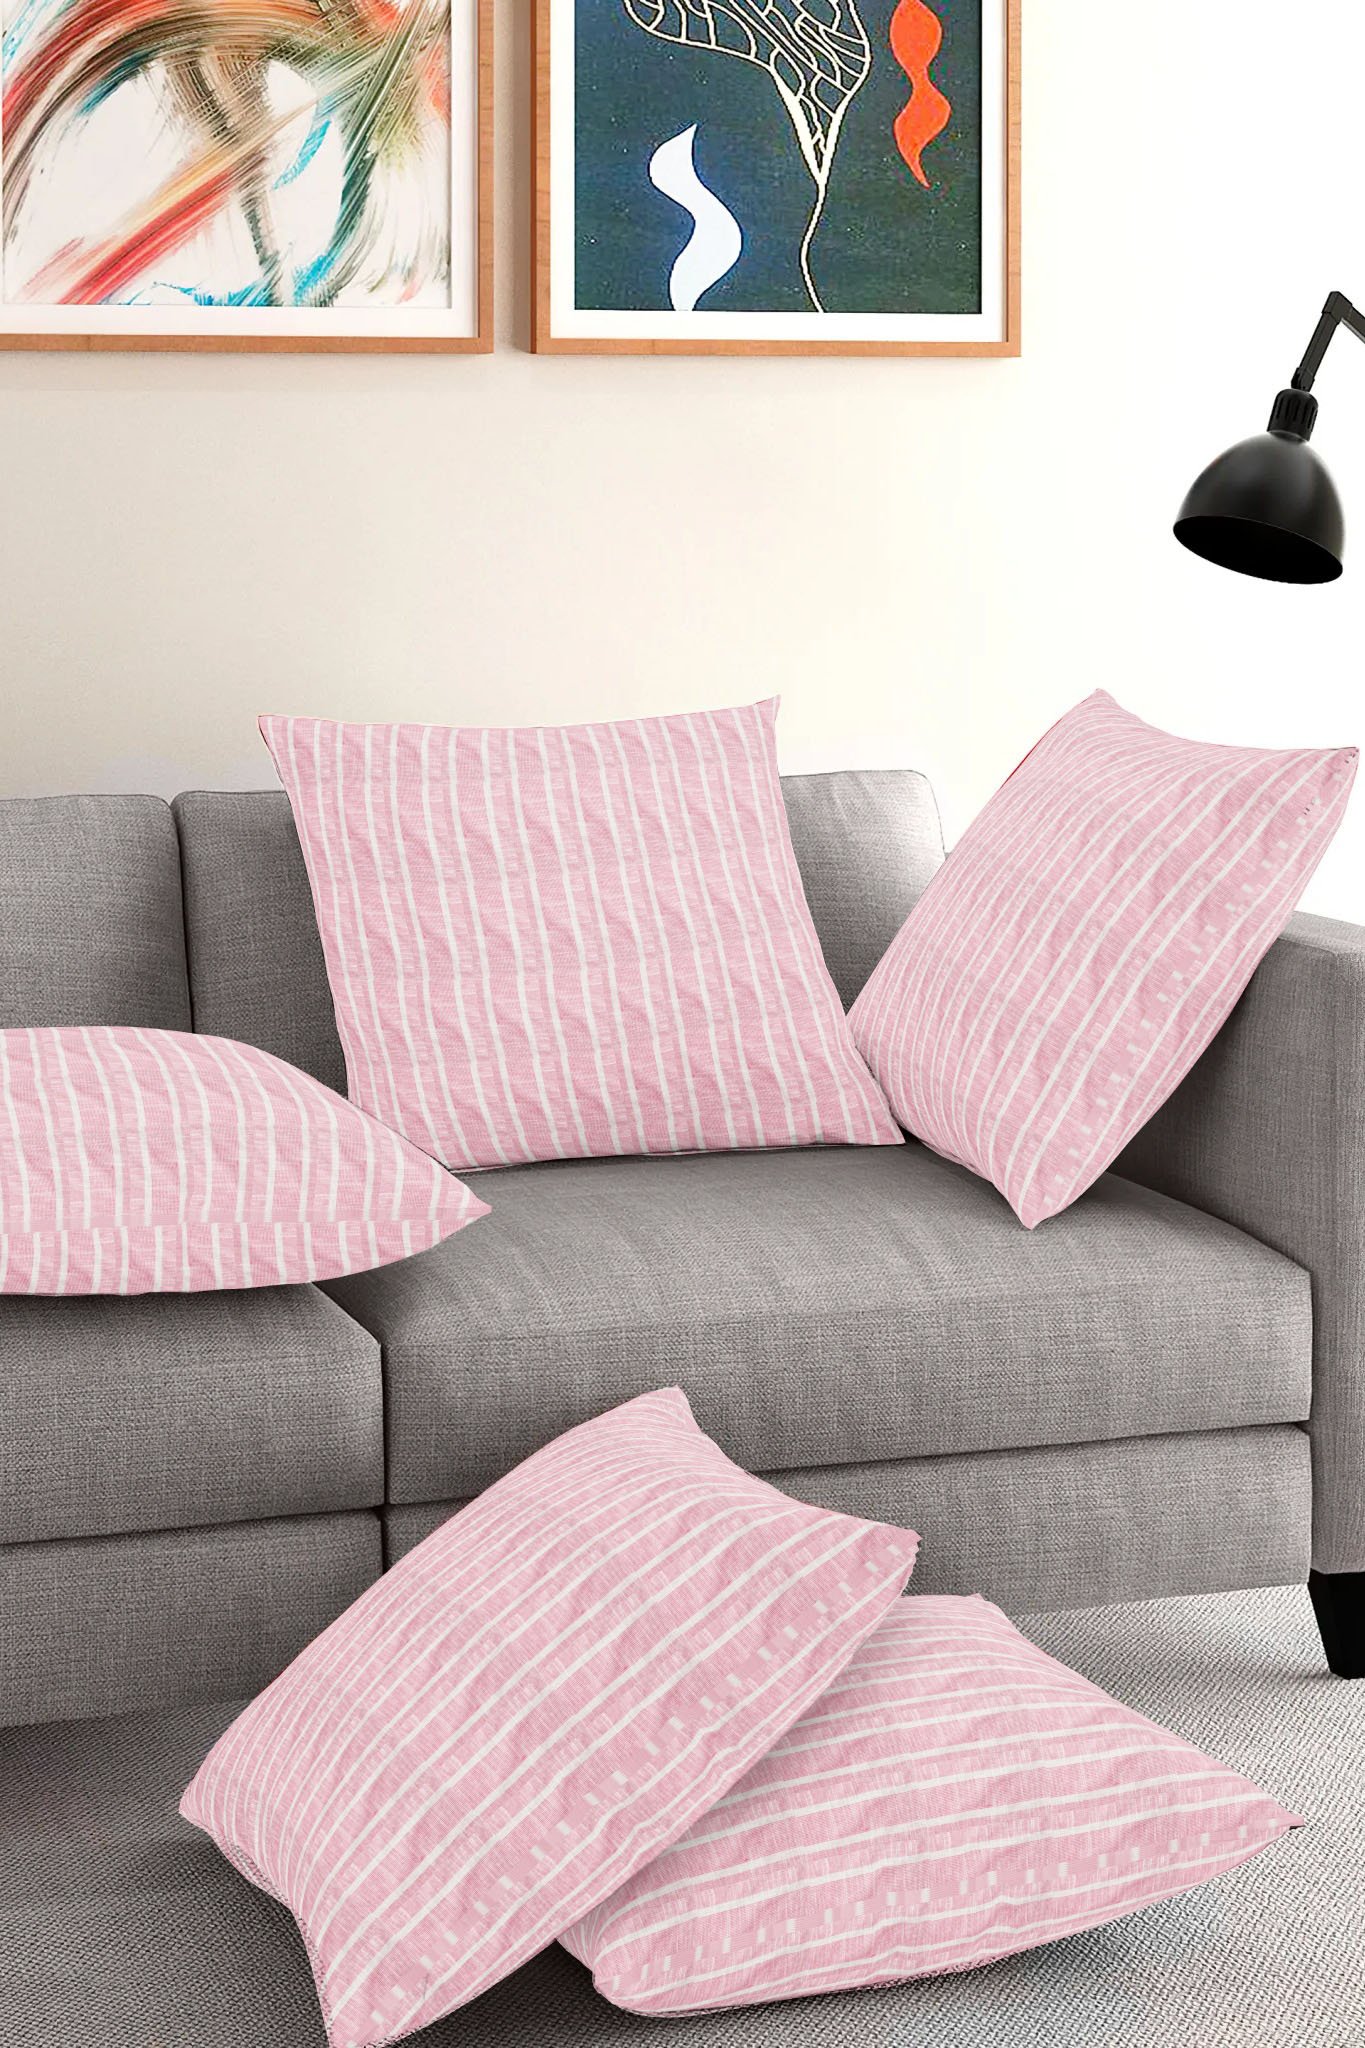 Set of 5-Pink White Cotton Cushion Cover-35383-16x16 Inches